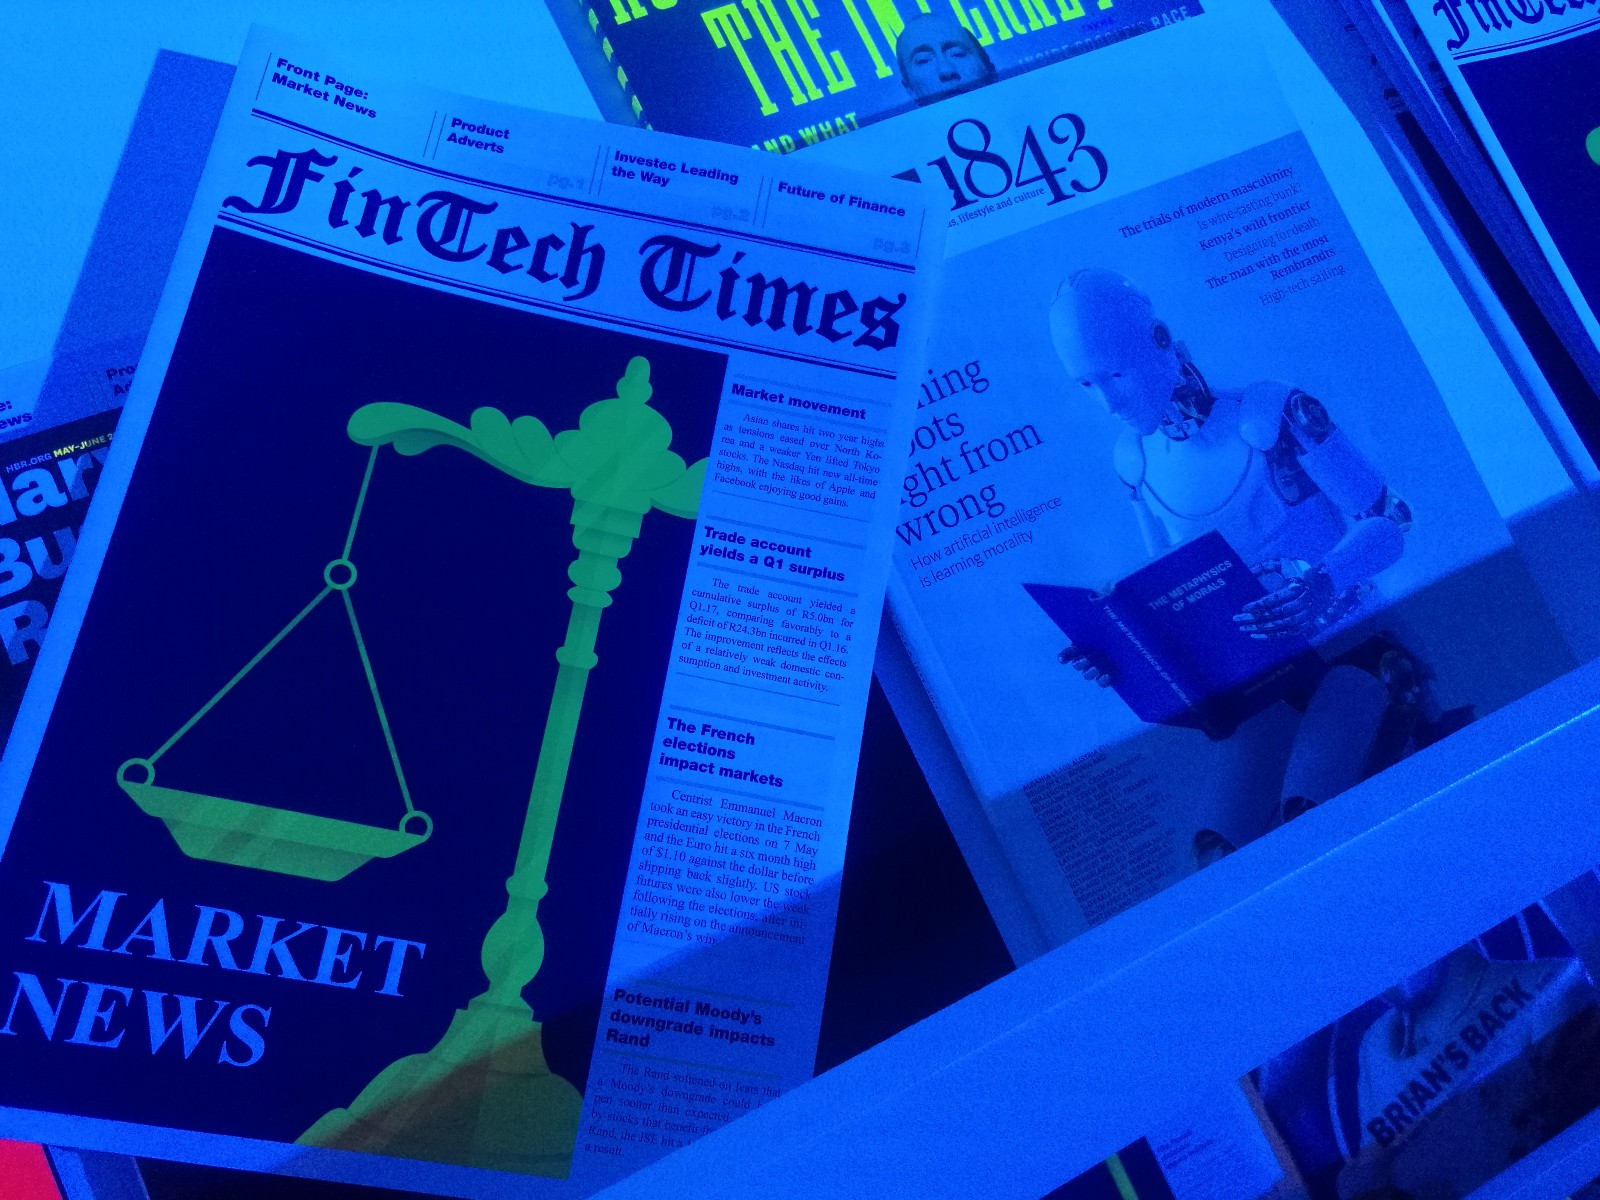 The FinTech Times, a made-up newspaper we created for the digital museum.